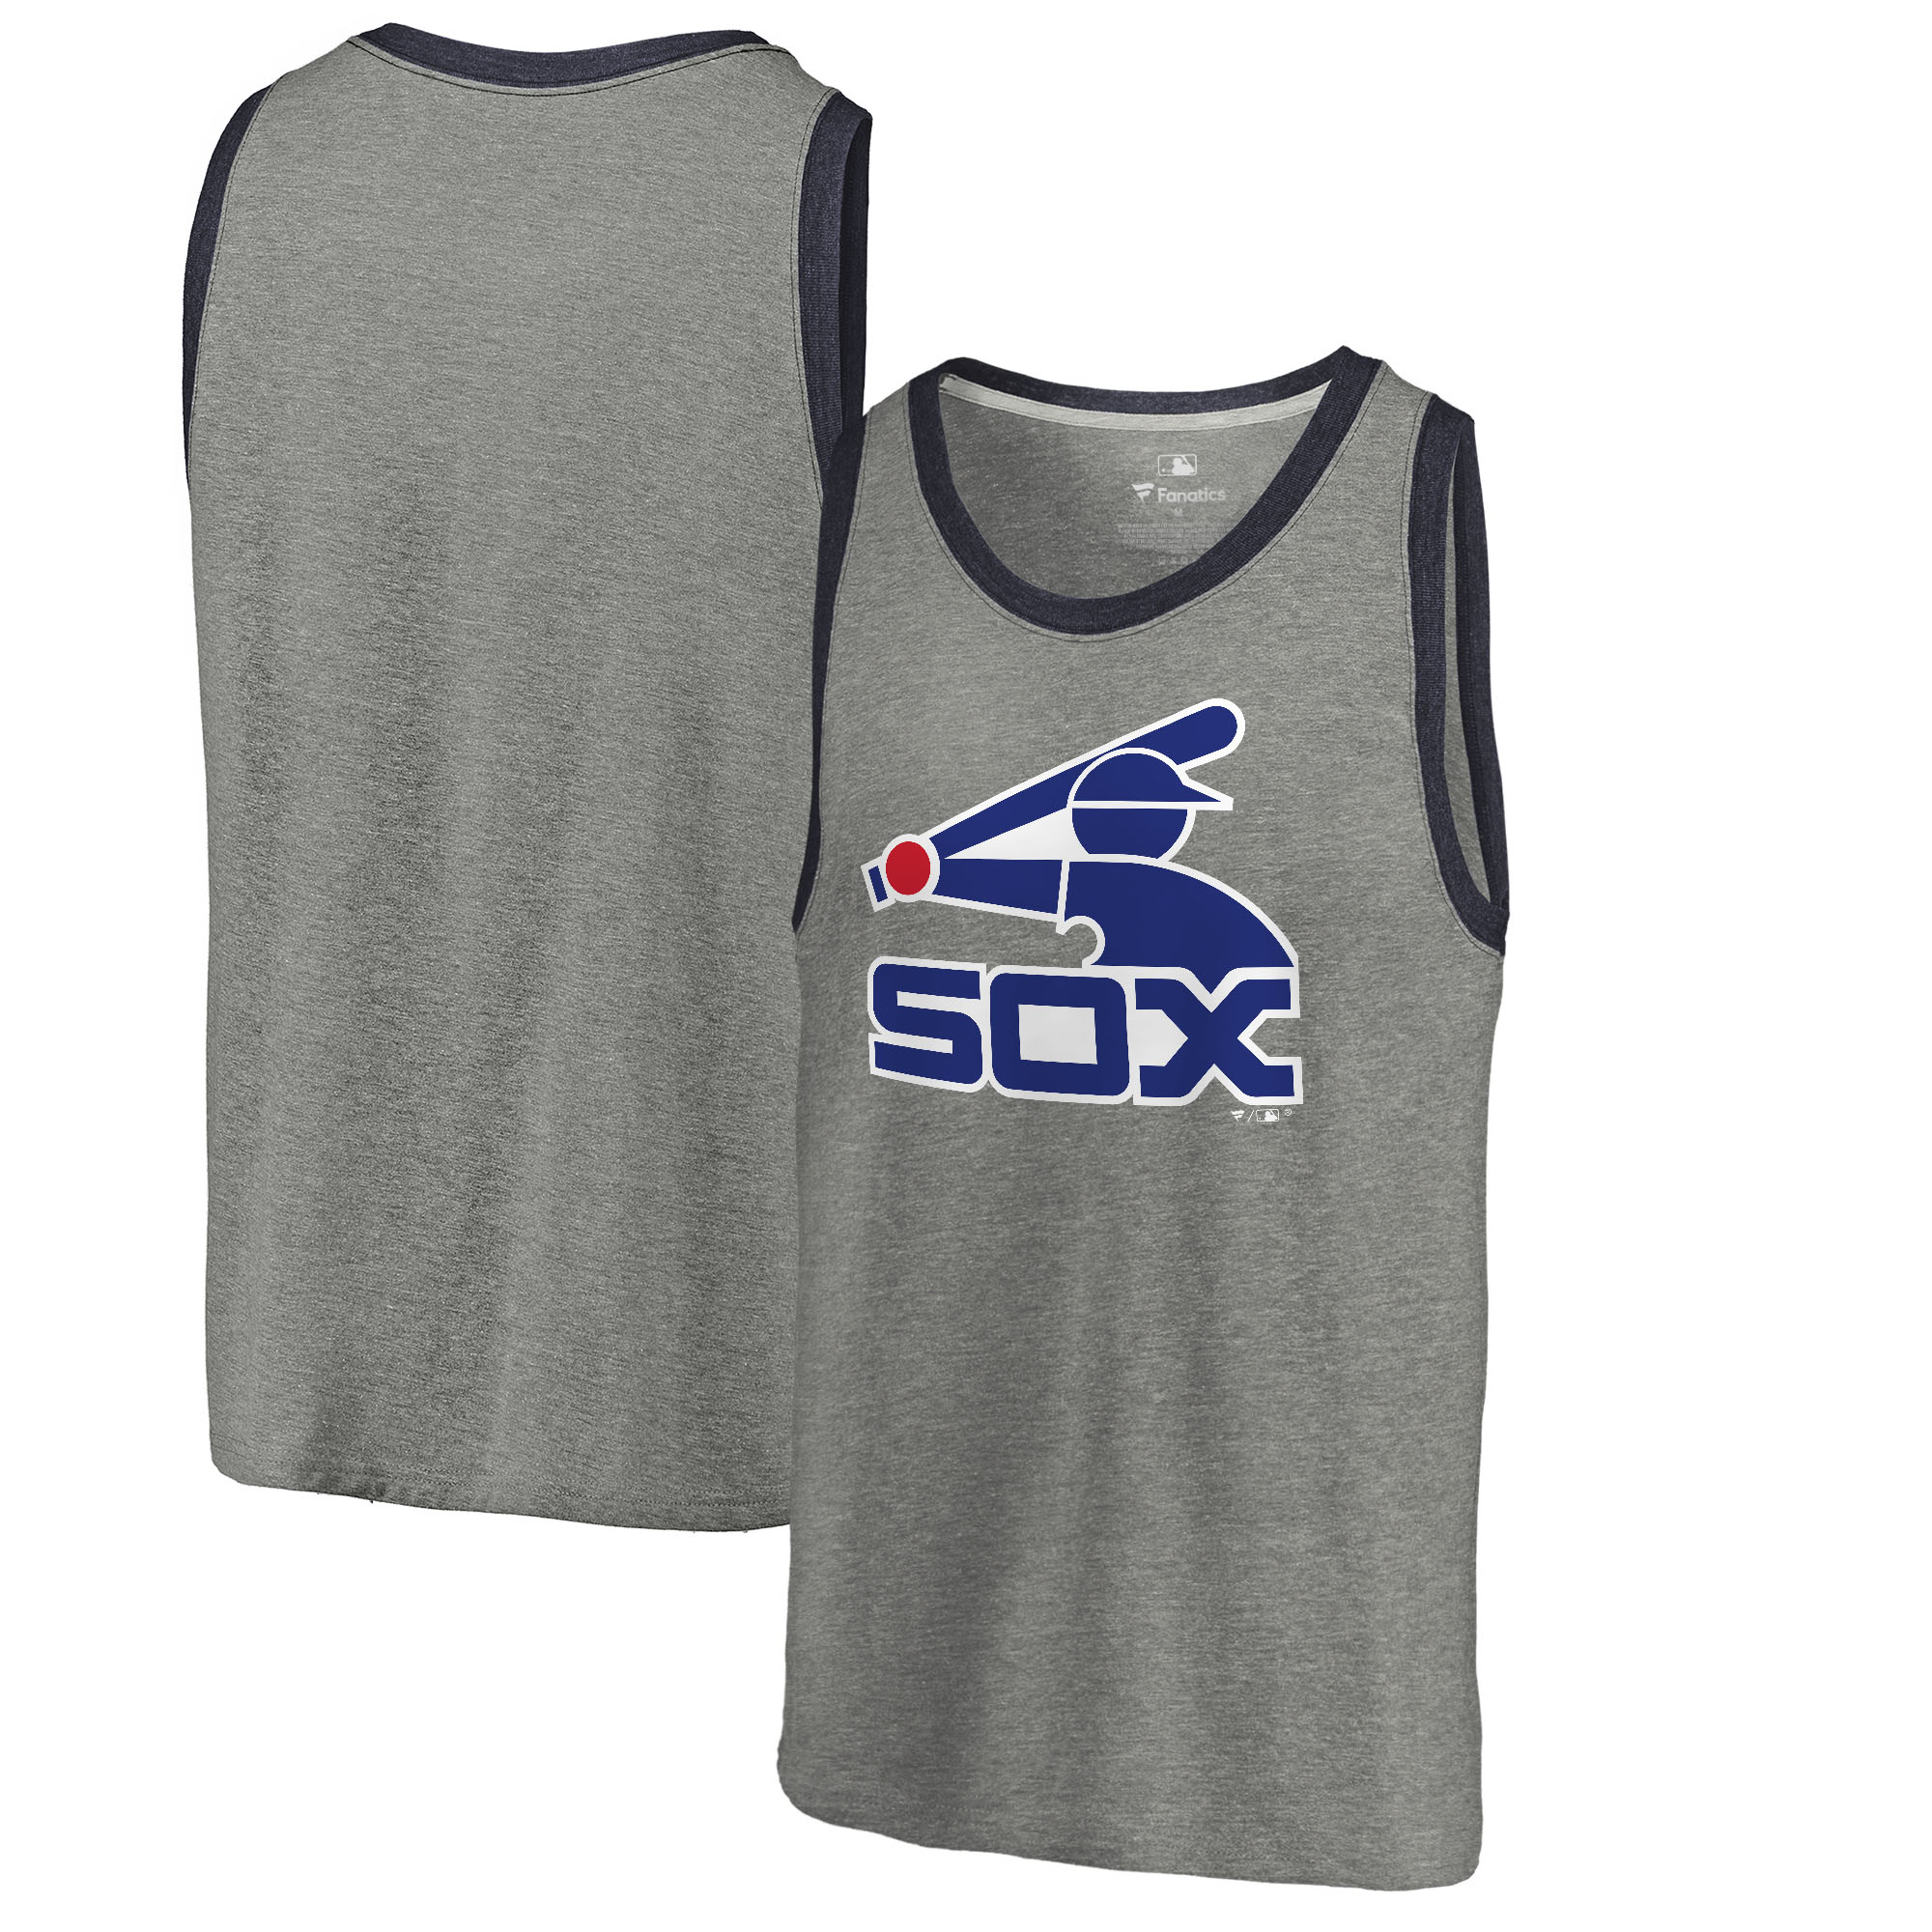 Chicago White Sox Fanatics Branded Cooperstown Collection Huntington Tri-Blend Tank Top - Heathered Gray